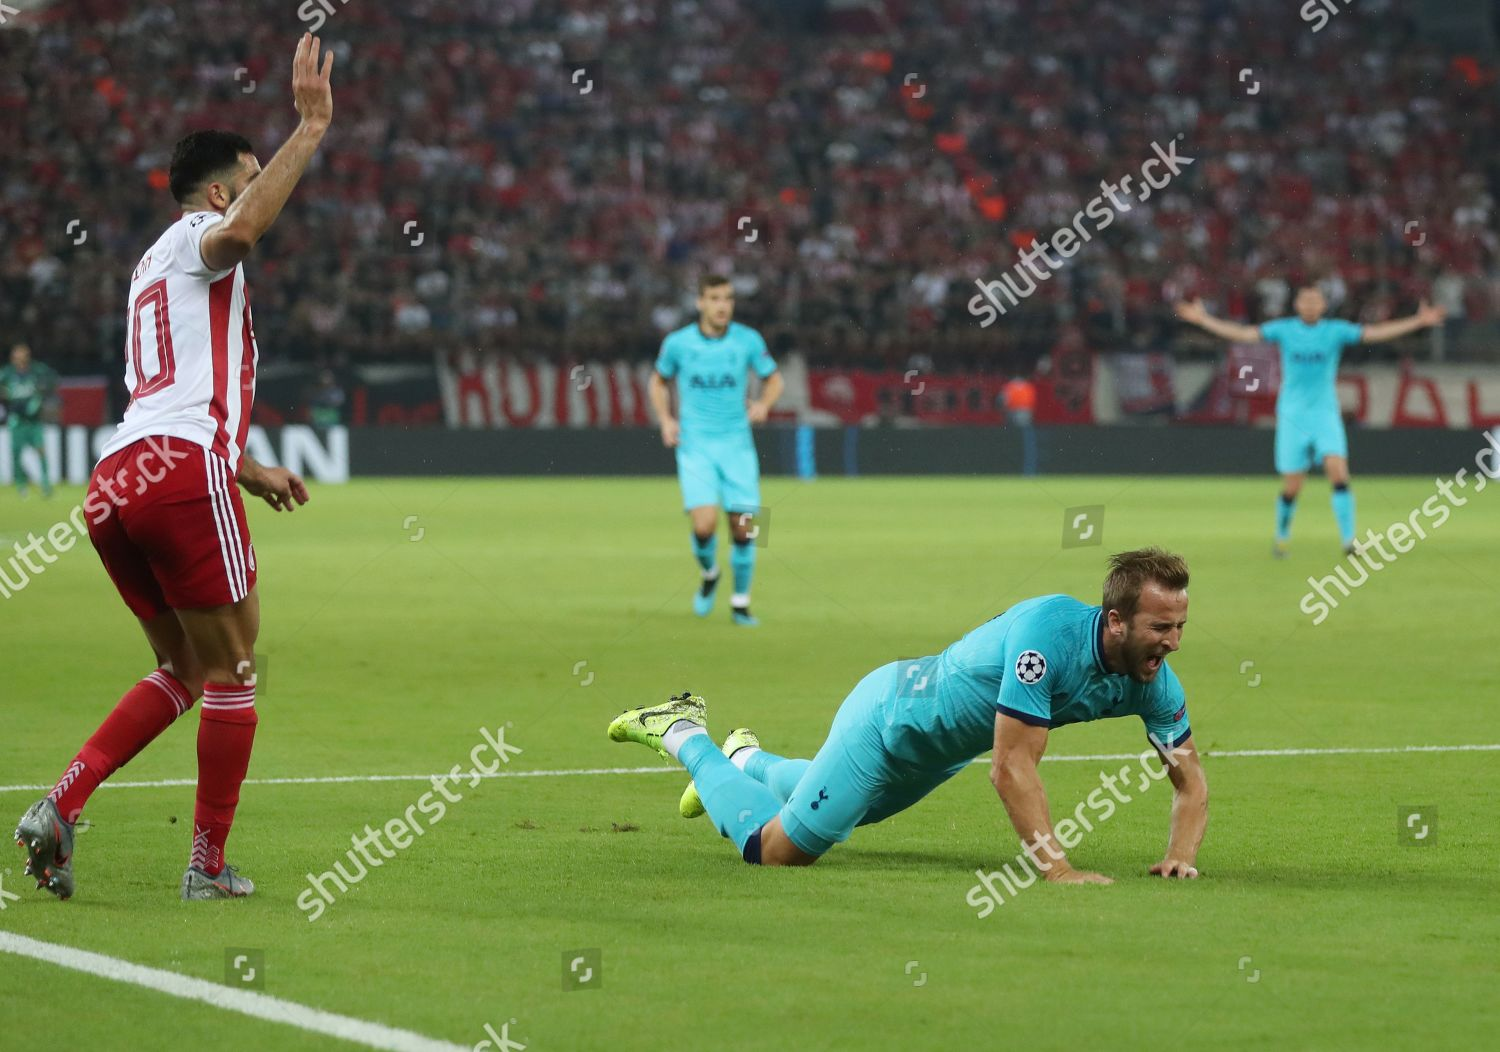 olympiakos-v-tottenham-hotspur-uefa-champions-league-group-b-football-karaiskakis-stadium-athens-greece-18-sep-2019-shutterstock-editorial-10415959ak.jpg